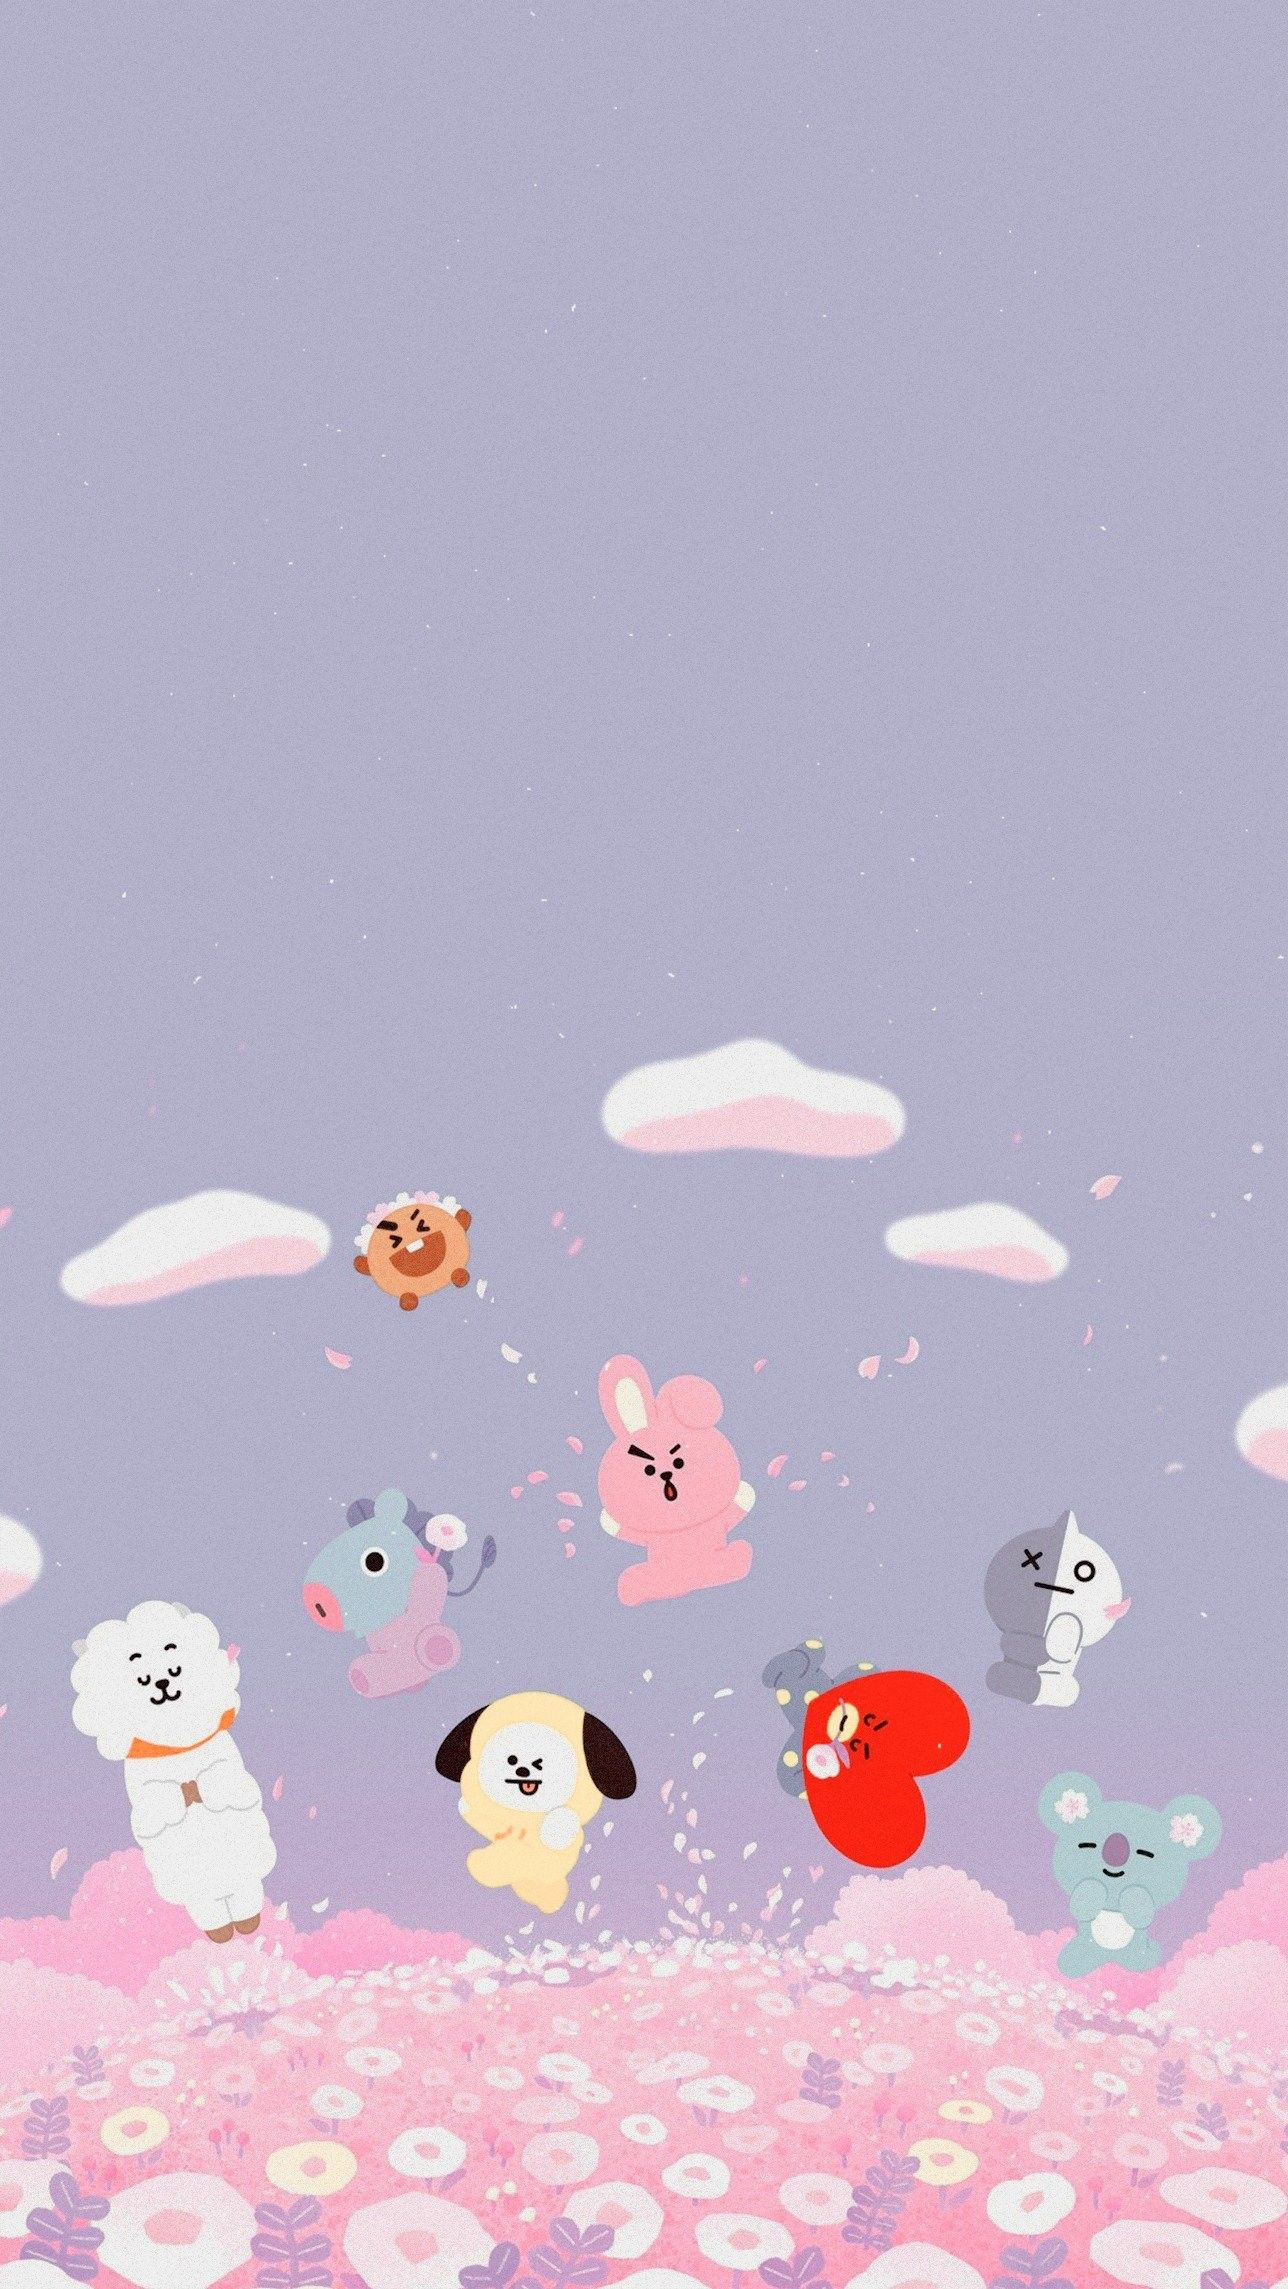 BT21 Wallpaper Credits to Twitterlockszscreenbts AS BT21